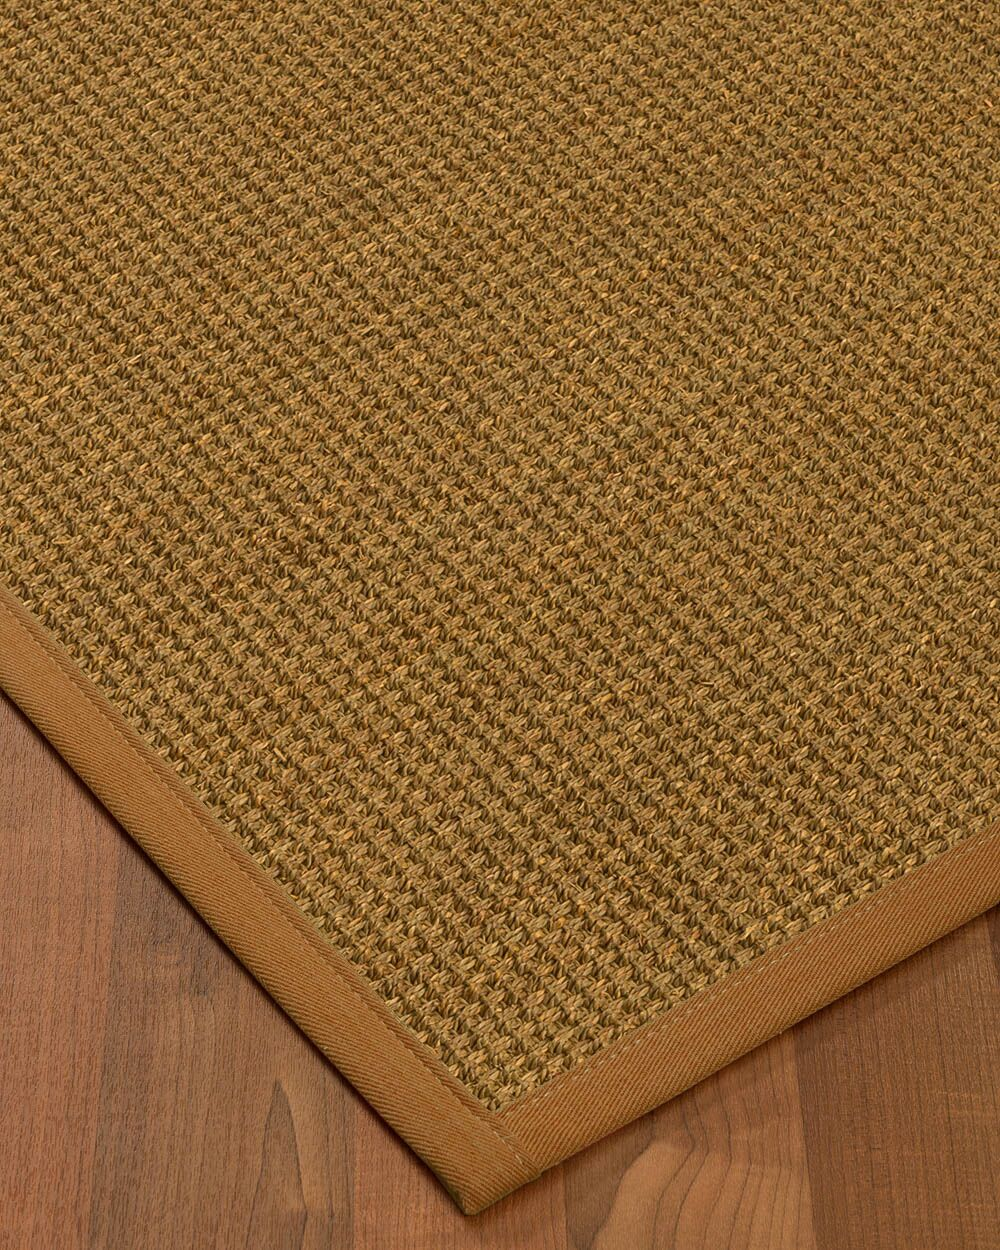 Chavez Border Hand-Woven Beige/Sienna Area Rug Rug Pad Included: No, Rug Size: Rectangle 3' x 5'